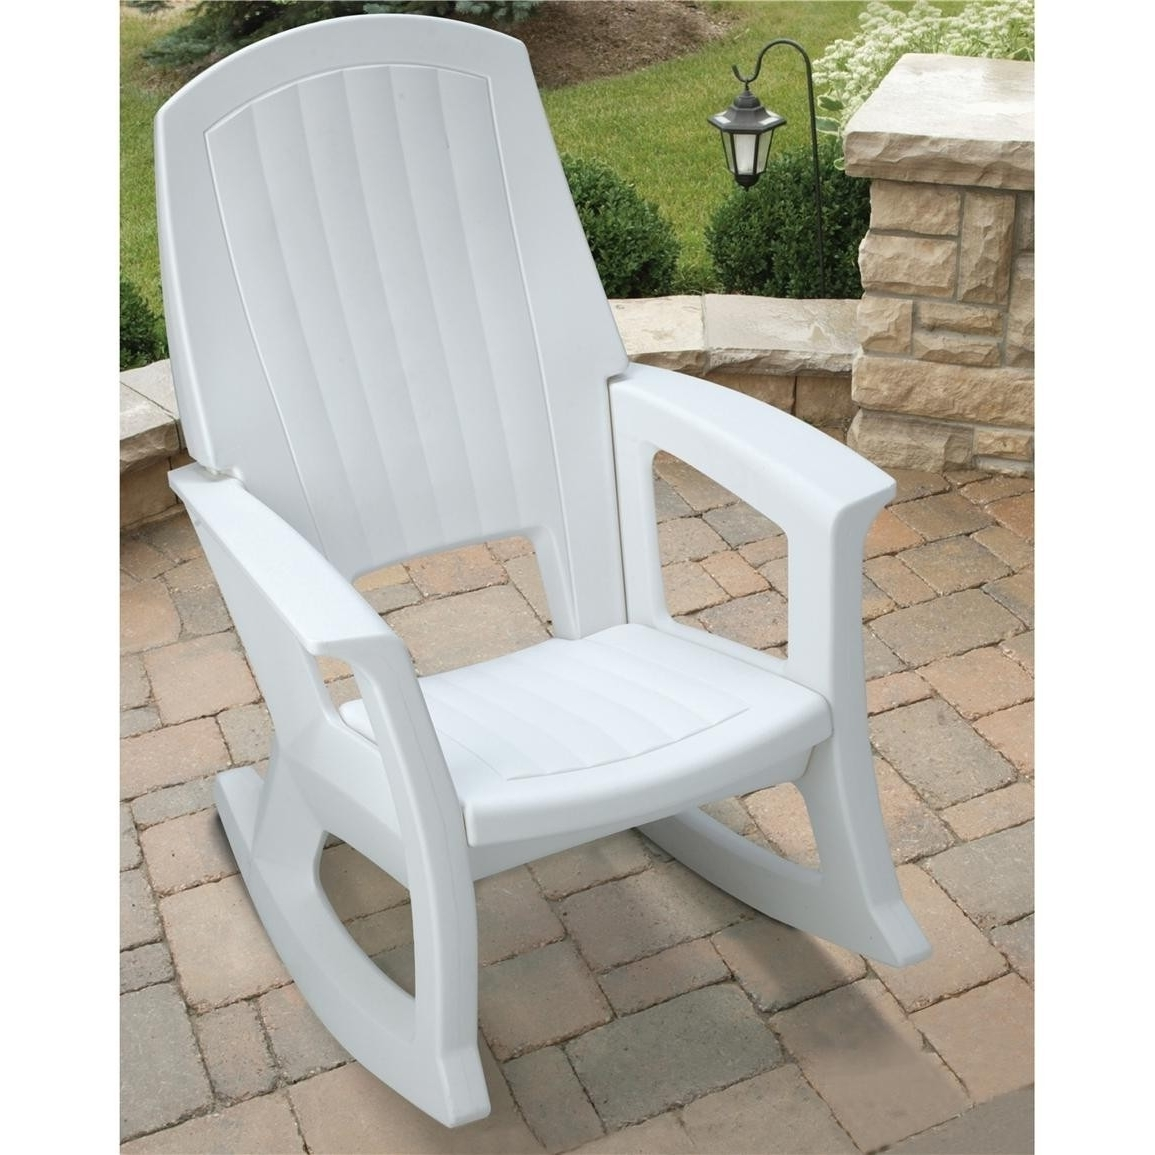 Well Known Semco Plastics White Resin Outdoor Patio Rocking Chair Semw Rural Intended For Resin Patio Rocking Chairs (View 14 of 15)